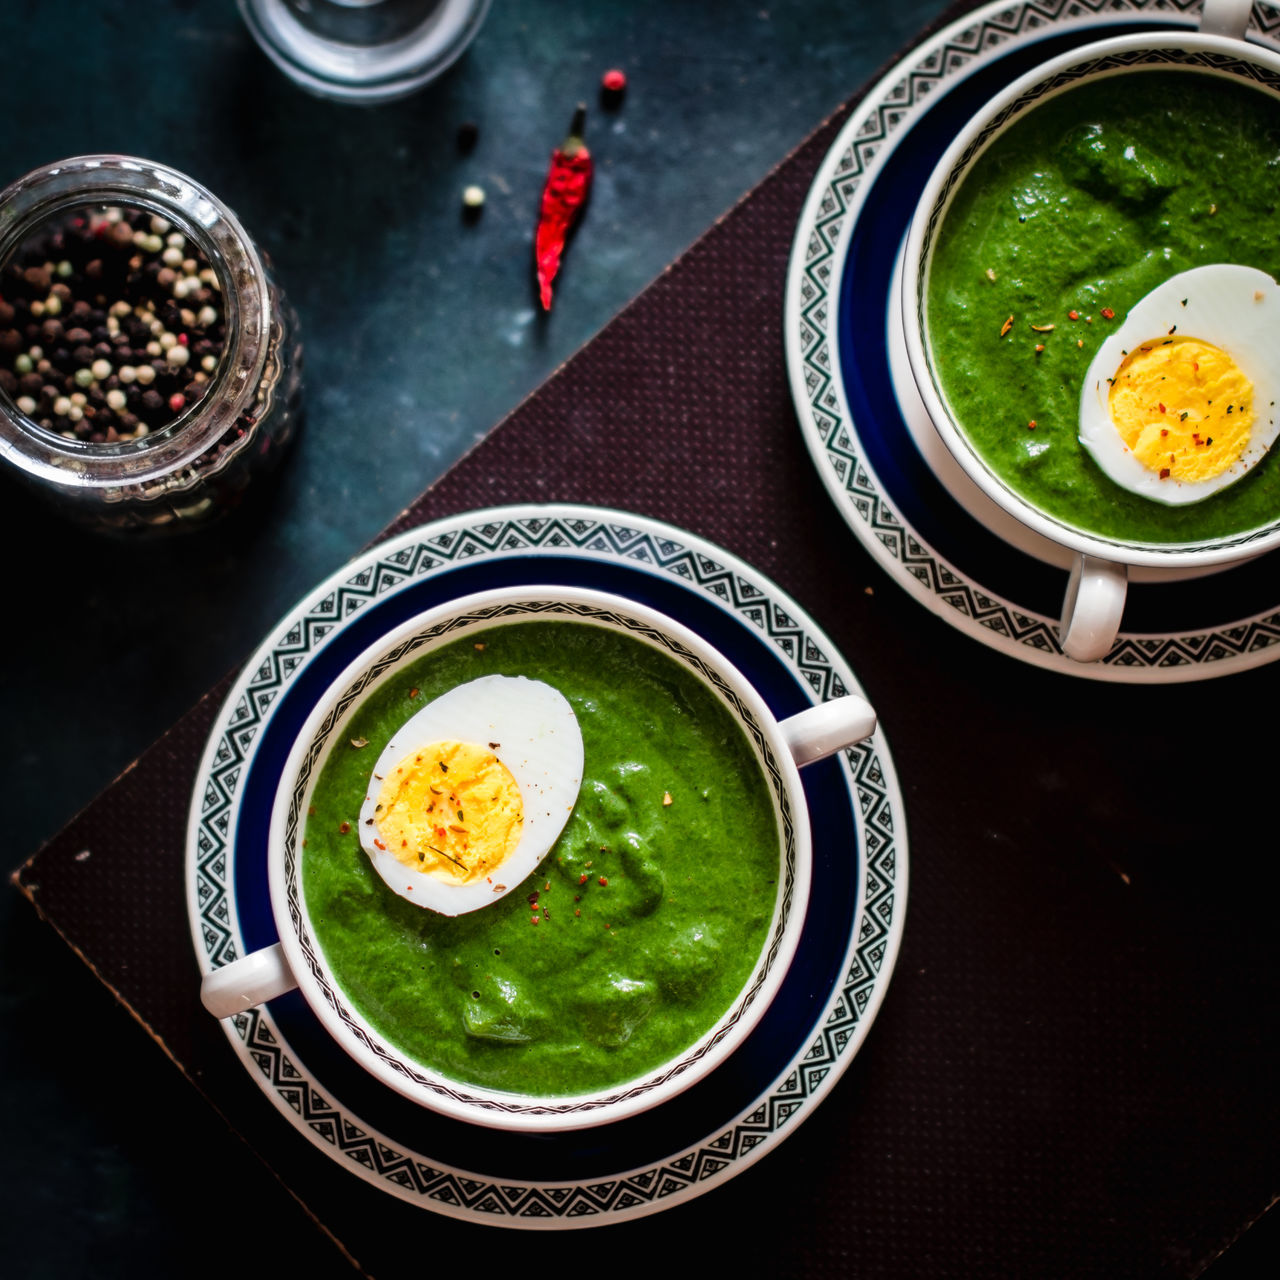 spinach soup with egg Bowl Chopsticks Close-up Day Directly Above Egg Egg Yolk Food Food And Drink Freshness Fried Egg Healthy Eating Indoors  Korean Food No People Plate Ready-to-eat Soup Spinach Sunny Side Up Table Vegetarian Food